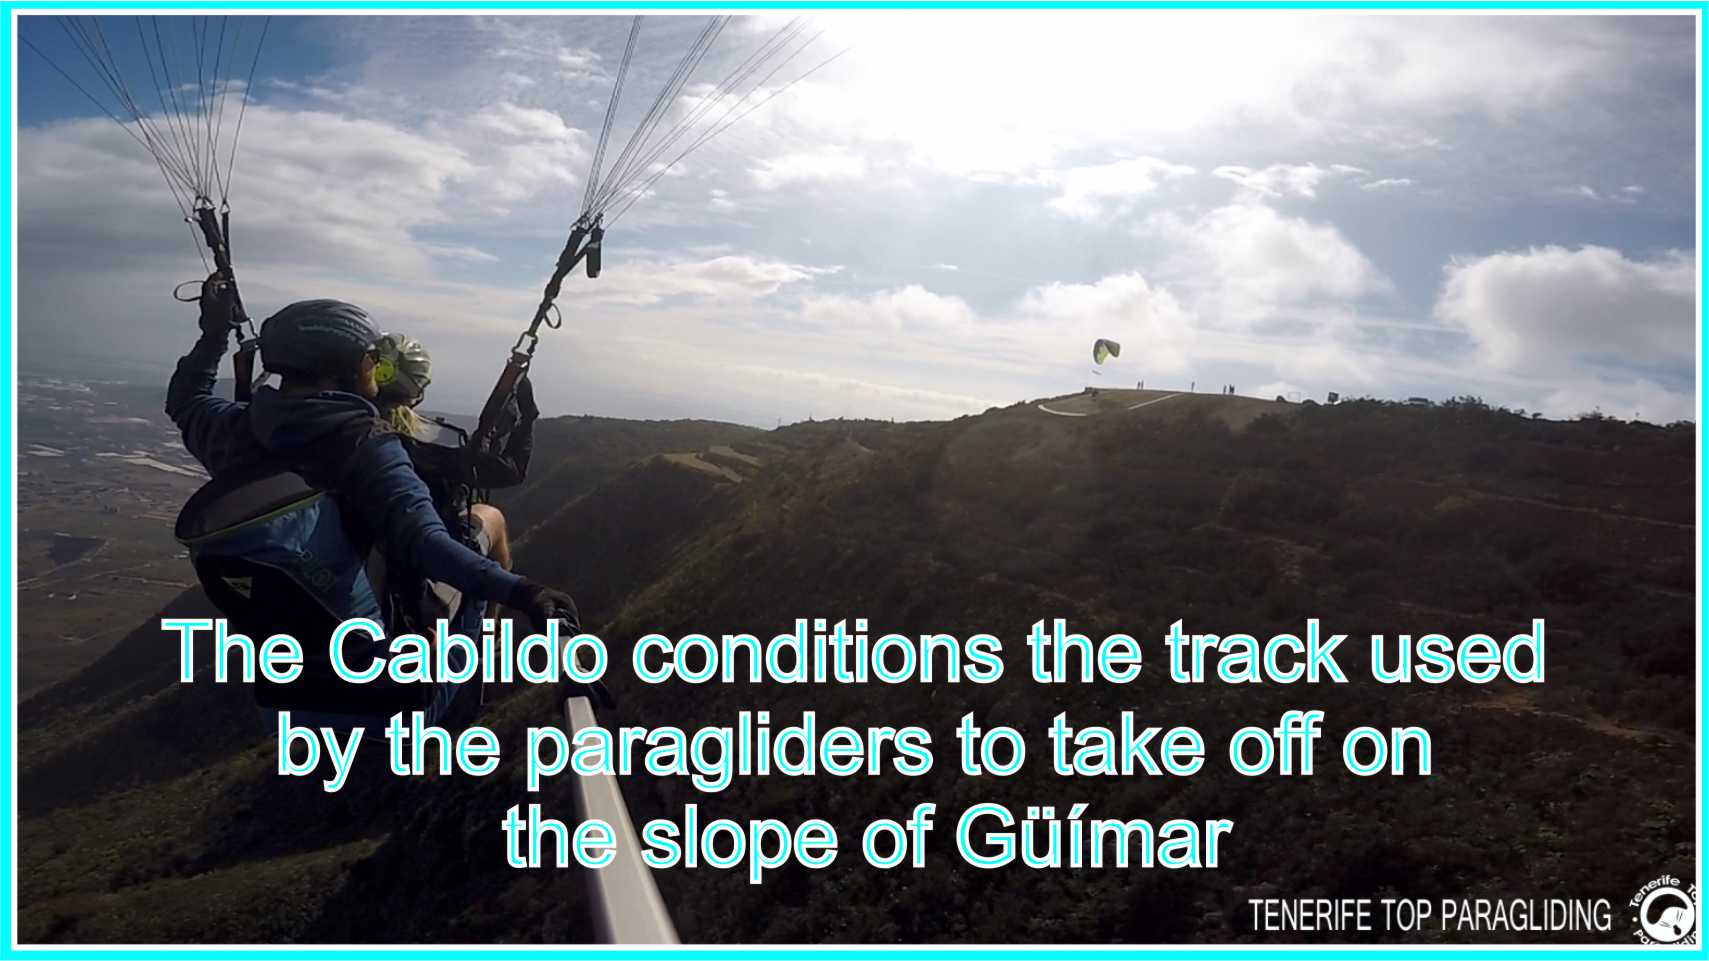 The Cabildo conditions the track used by the paragliders to take off on the slope of Güímar